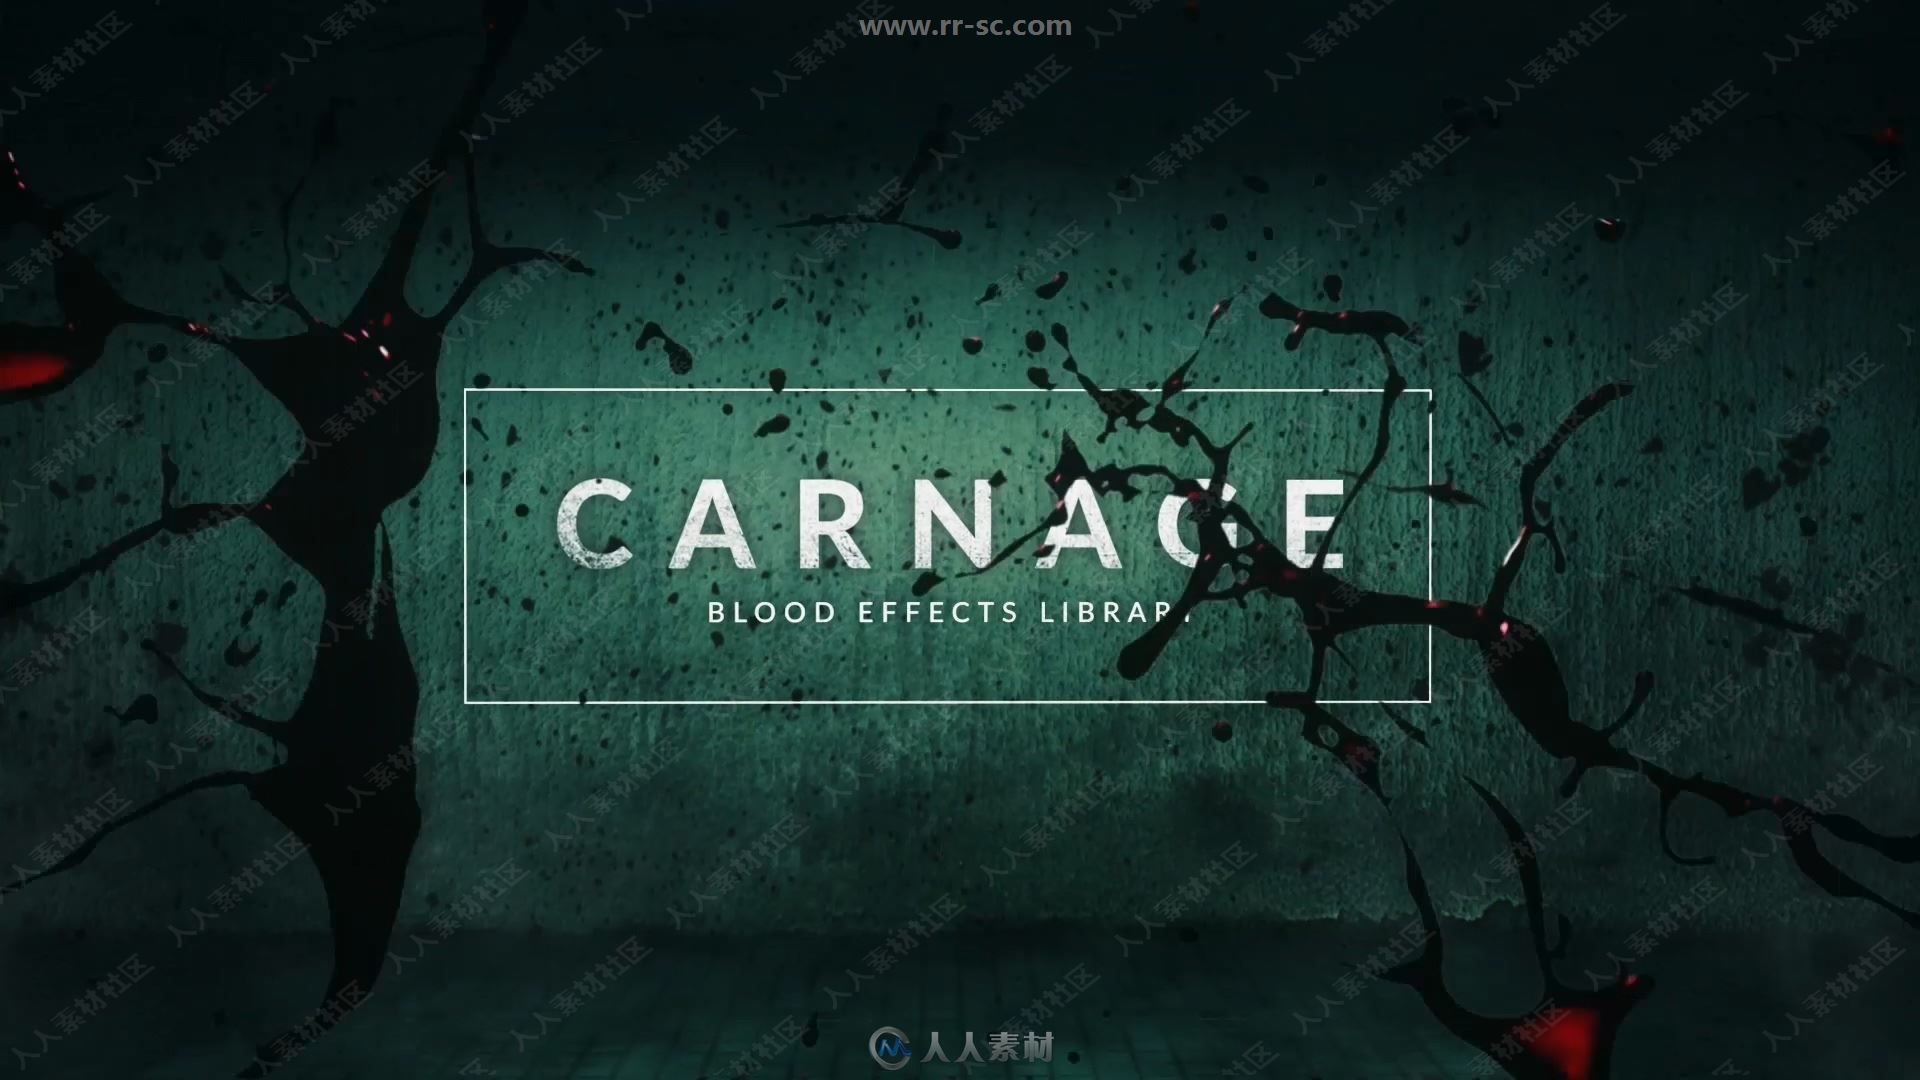 Carnage 296 Blood Video Effects for Gory Horror Scenes.mp4_20190423_074221.964.jpg